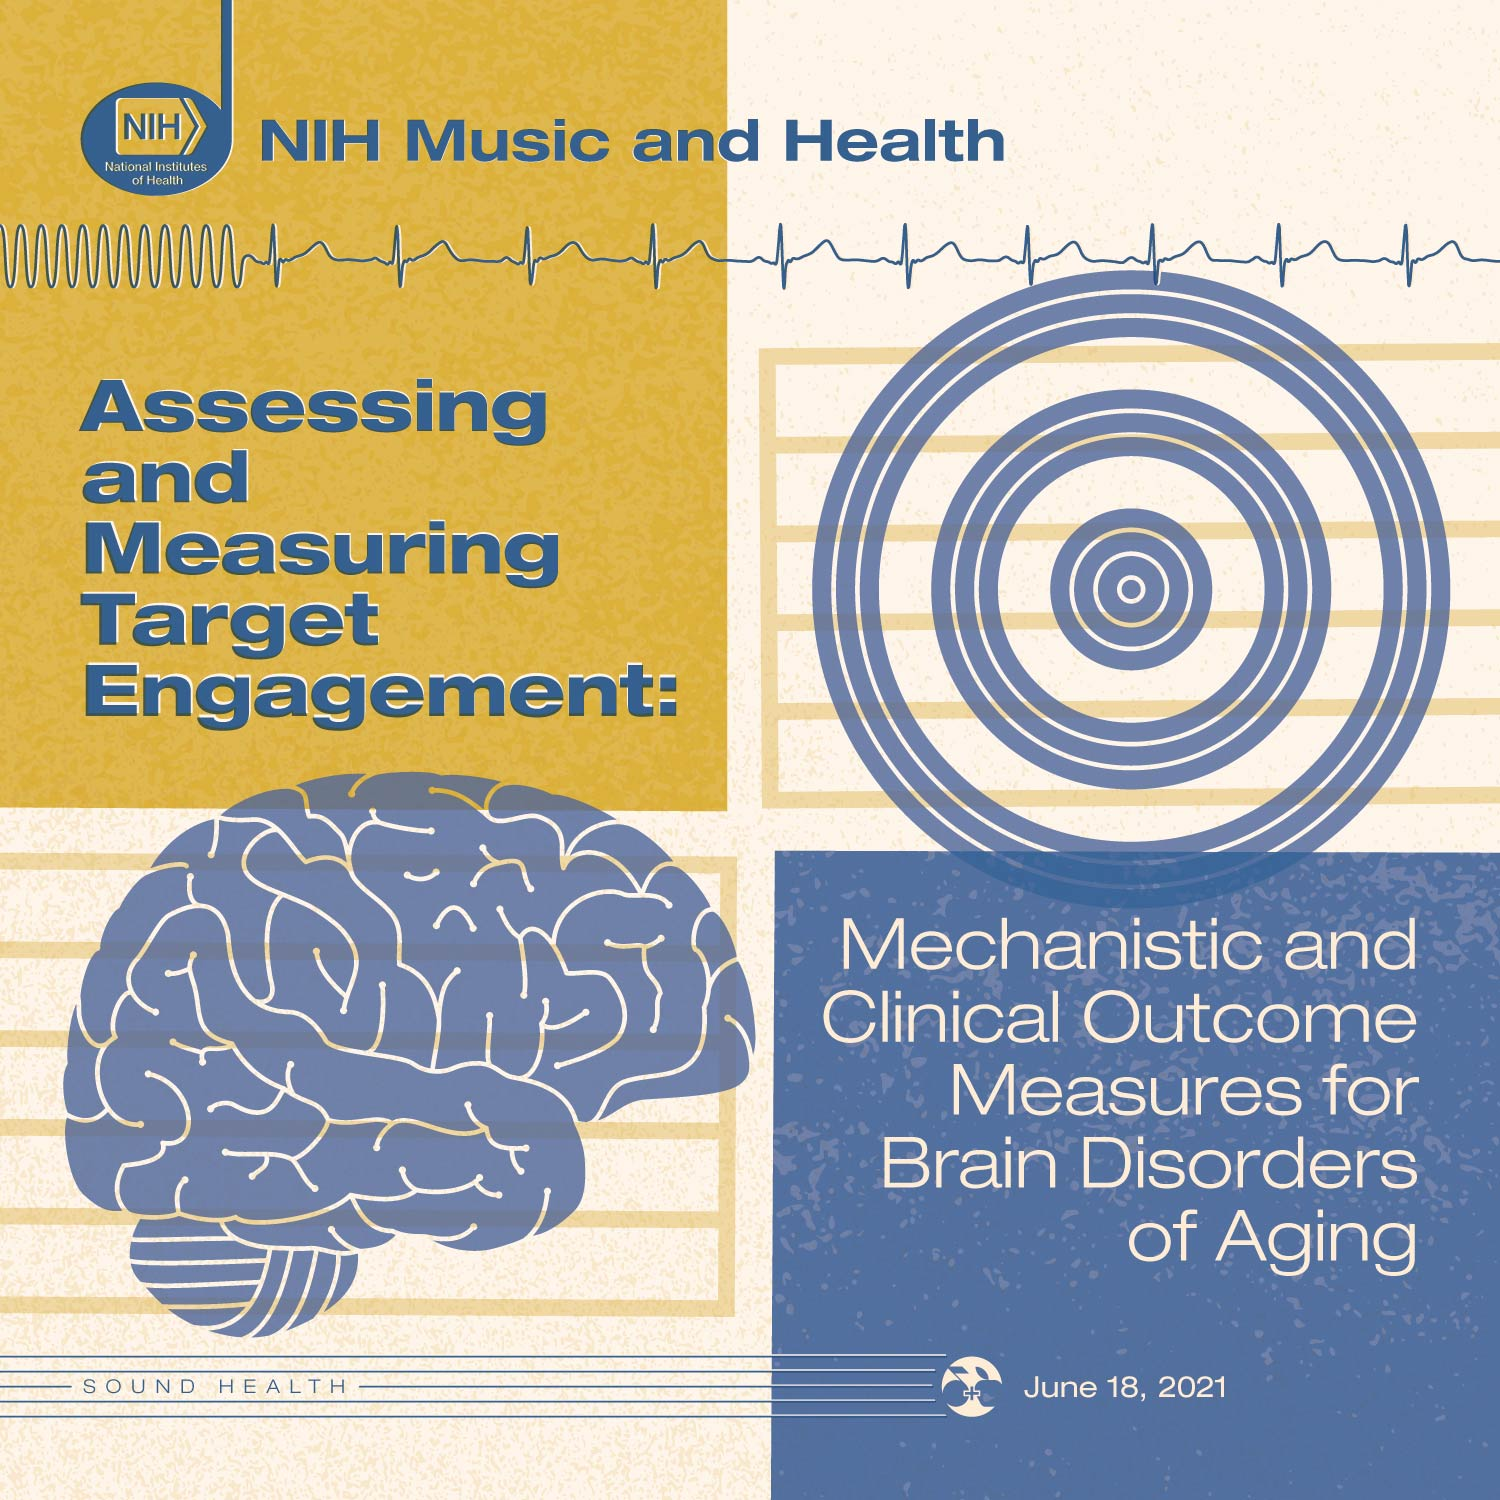 Assessing and Measuring Target Engagement: Mechanistic and Clinical Outcome Measures for Brain Disorders of Aging